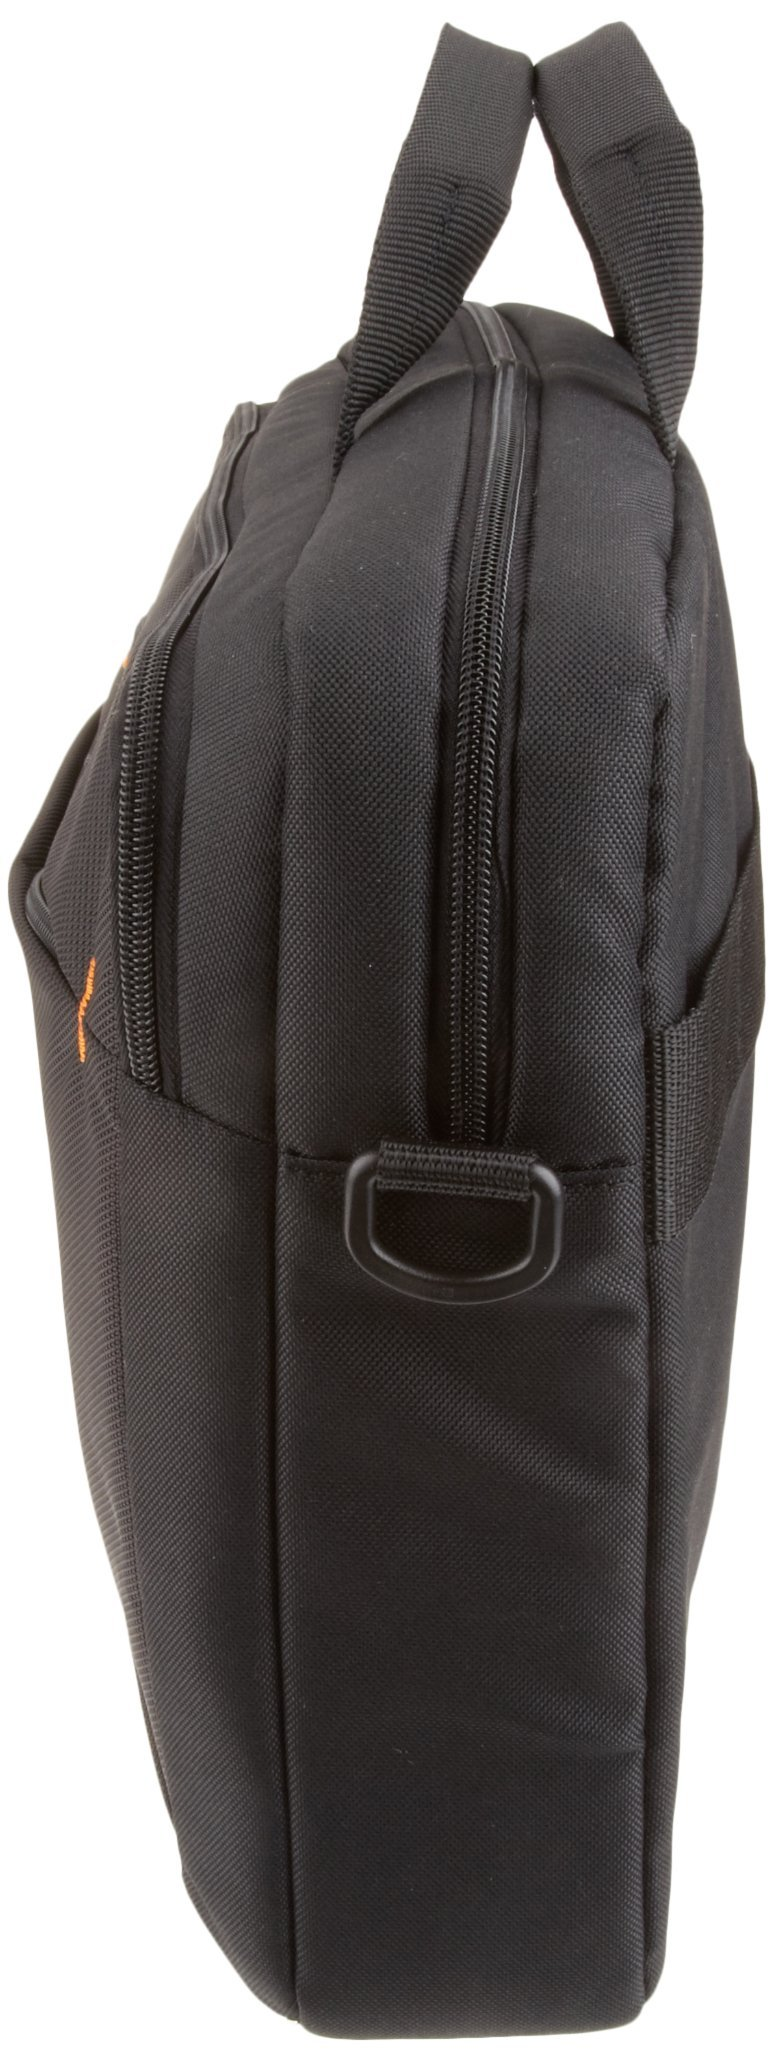 AmazonBasics 15.6-Inch Laptop and Tablet Bag, 10-Pack